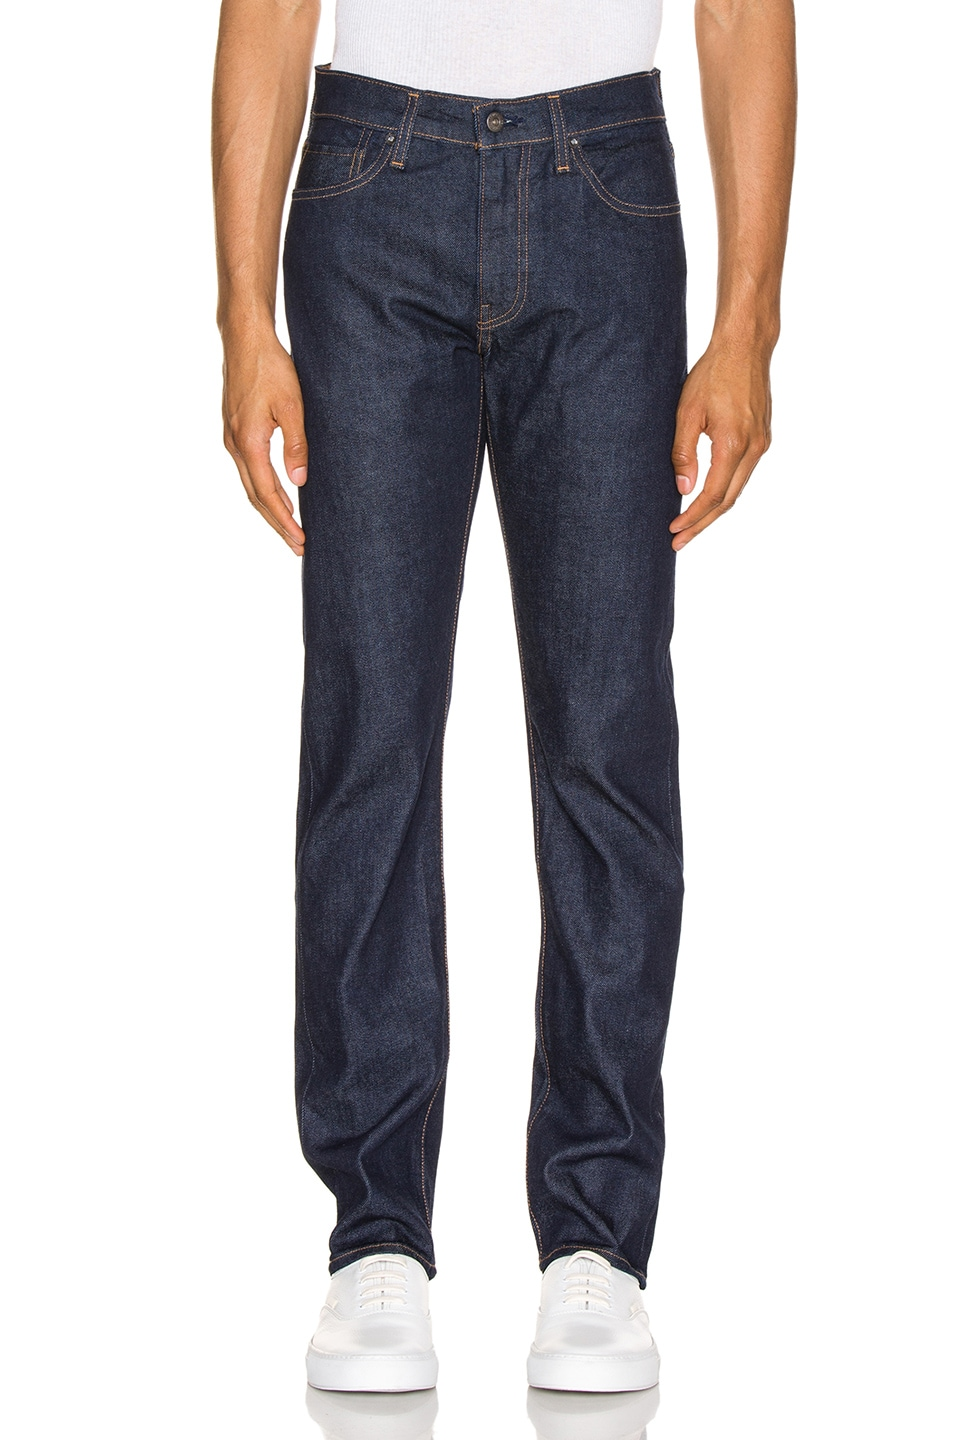 Image 1 of LEVI'S: Made & Crafted 511 in Resin Rinse Stretch Selvedge